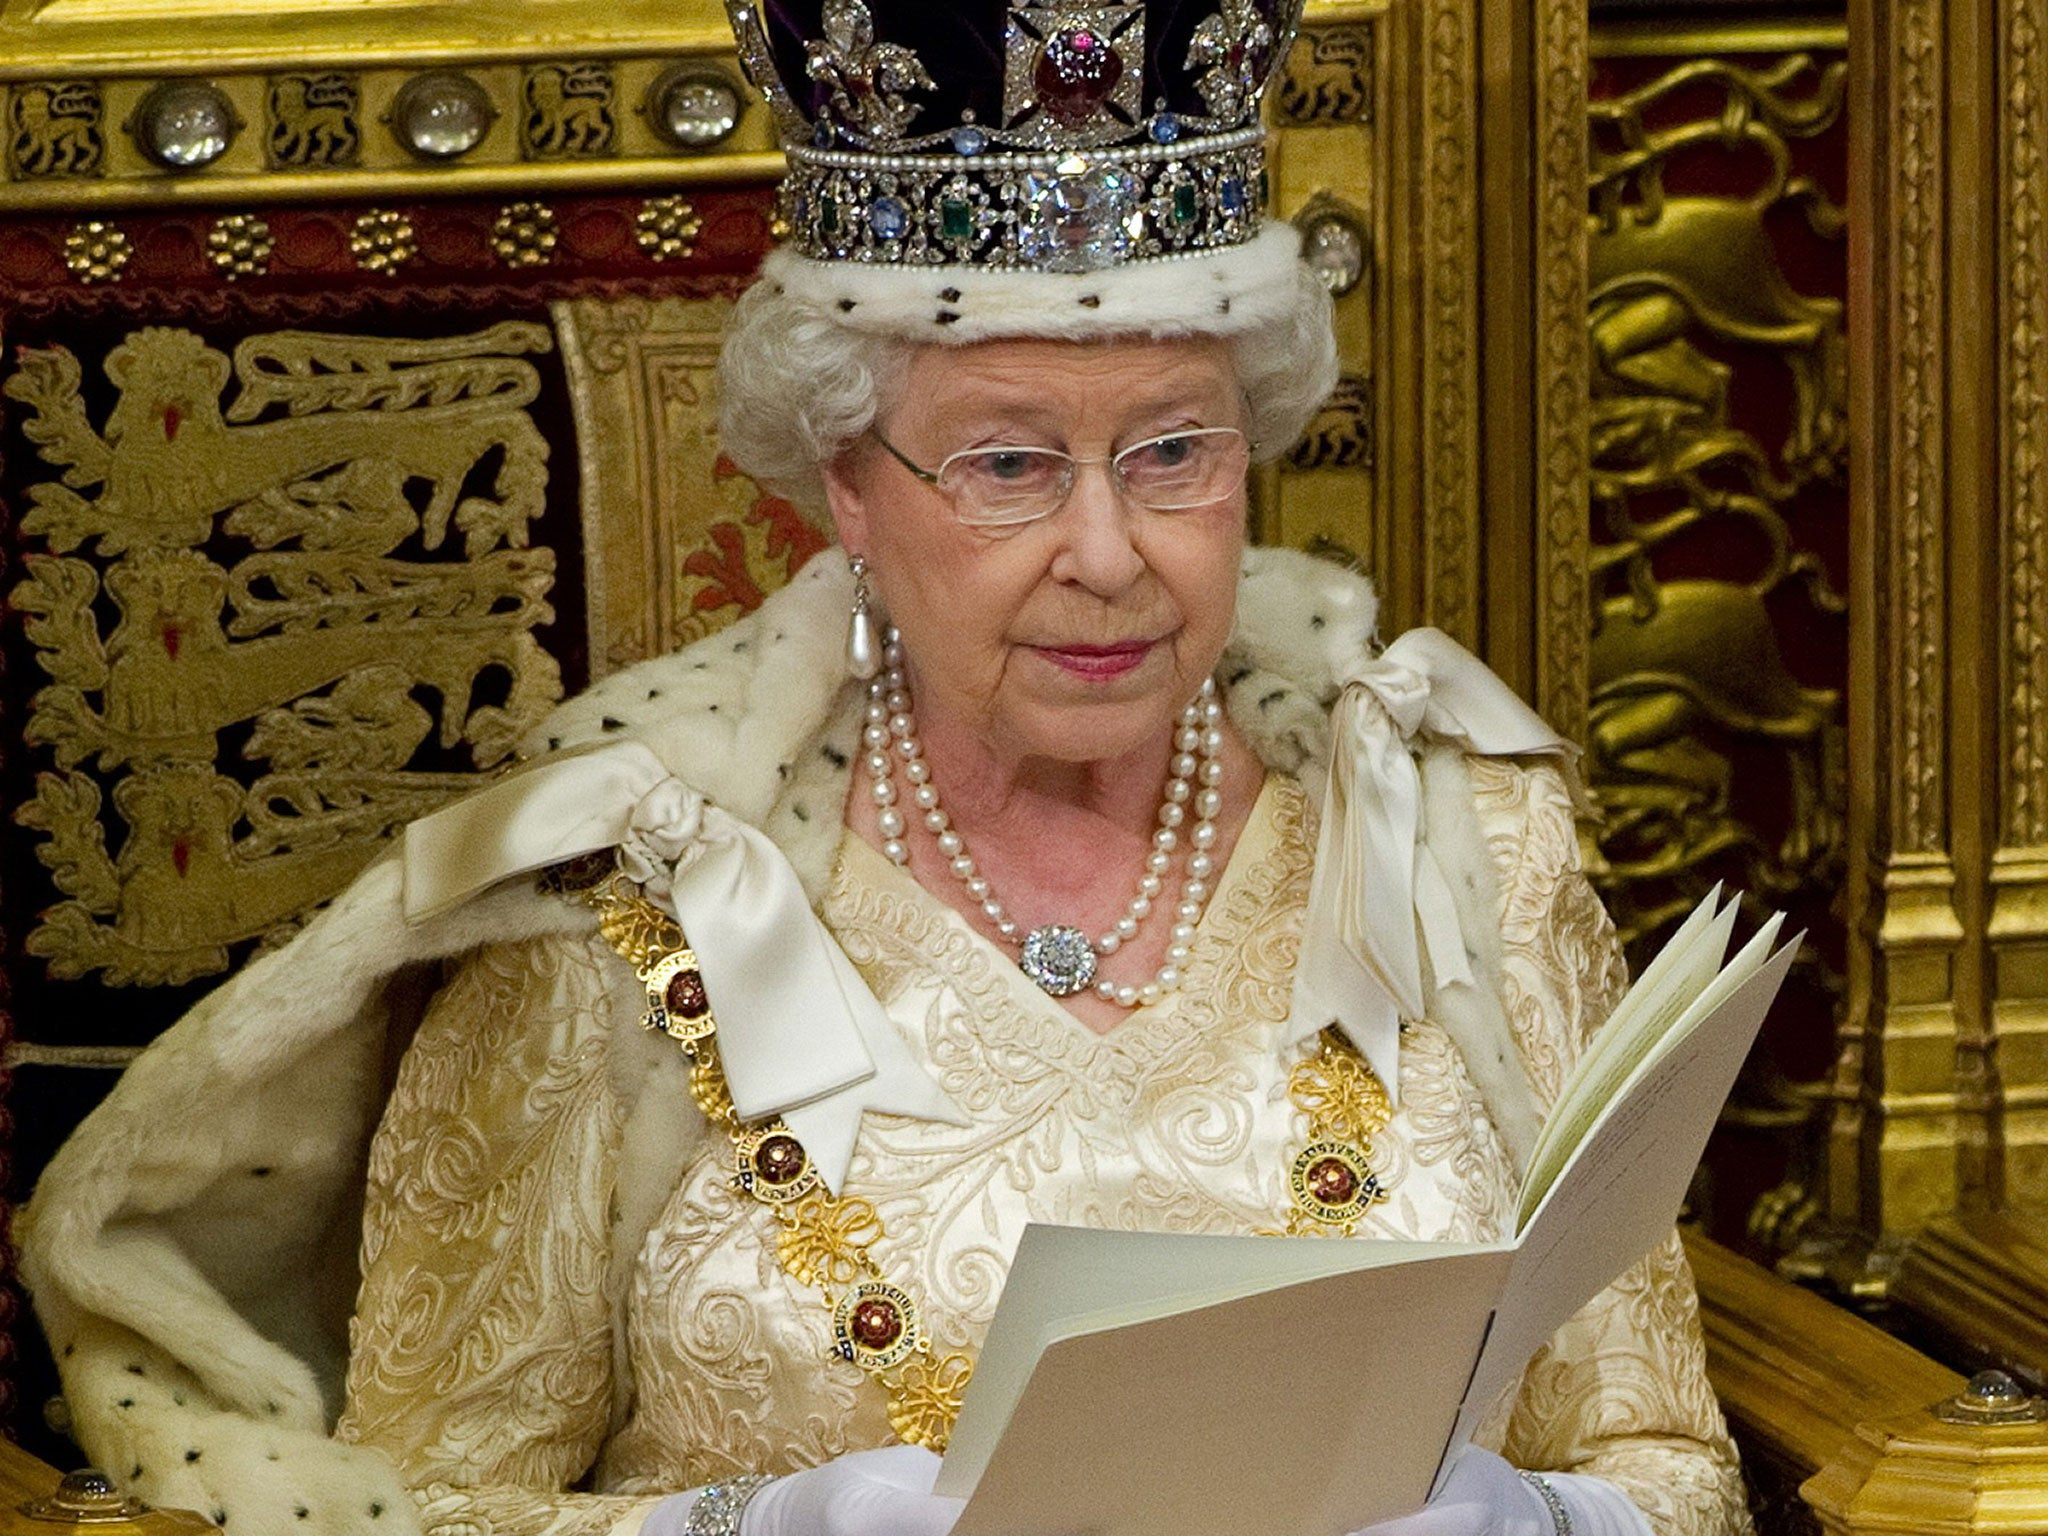 informative speech queen elizabeth Queen elizabeth ii outlined the government's legislative program in a speech to parliament on wednesday after the prime minister slimmed down her plans and promised humility in negotiating britain's exit from the european union following a disastrous election that cost the ruling conservative party its majority.